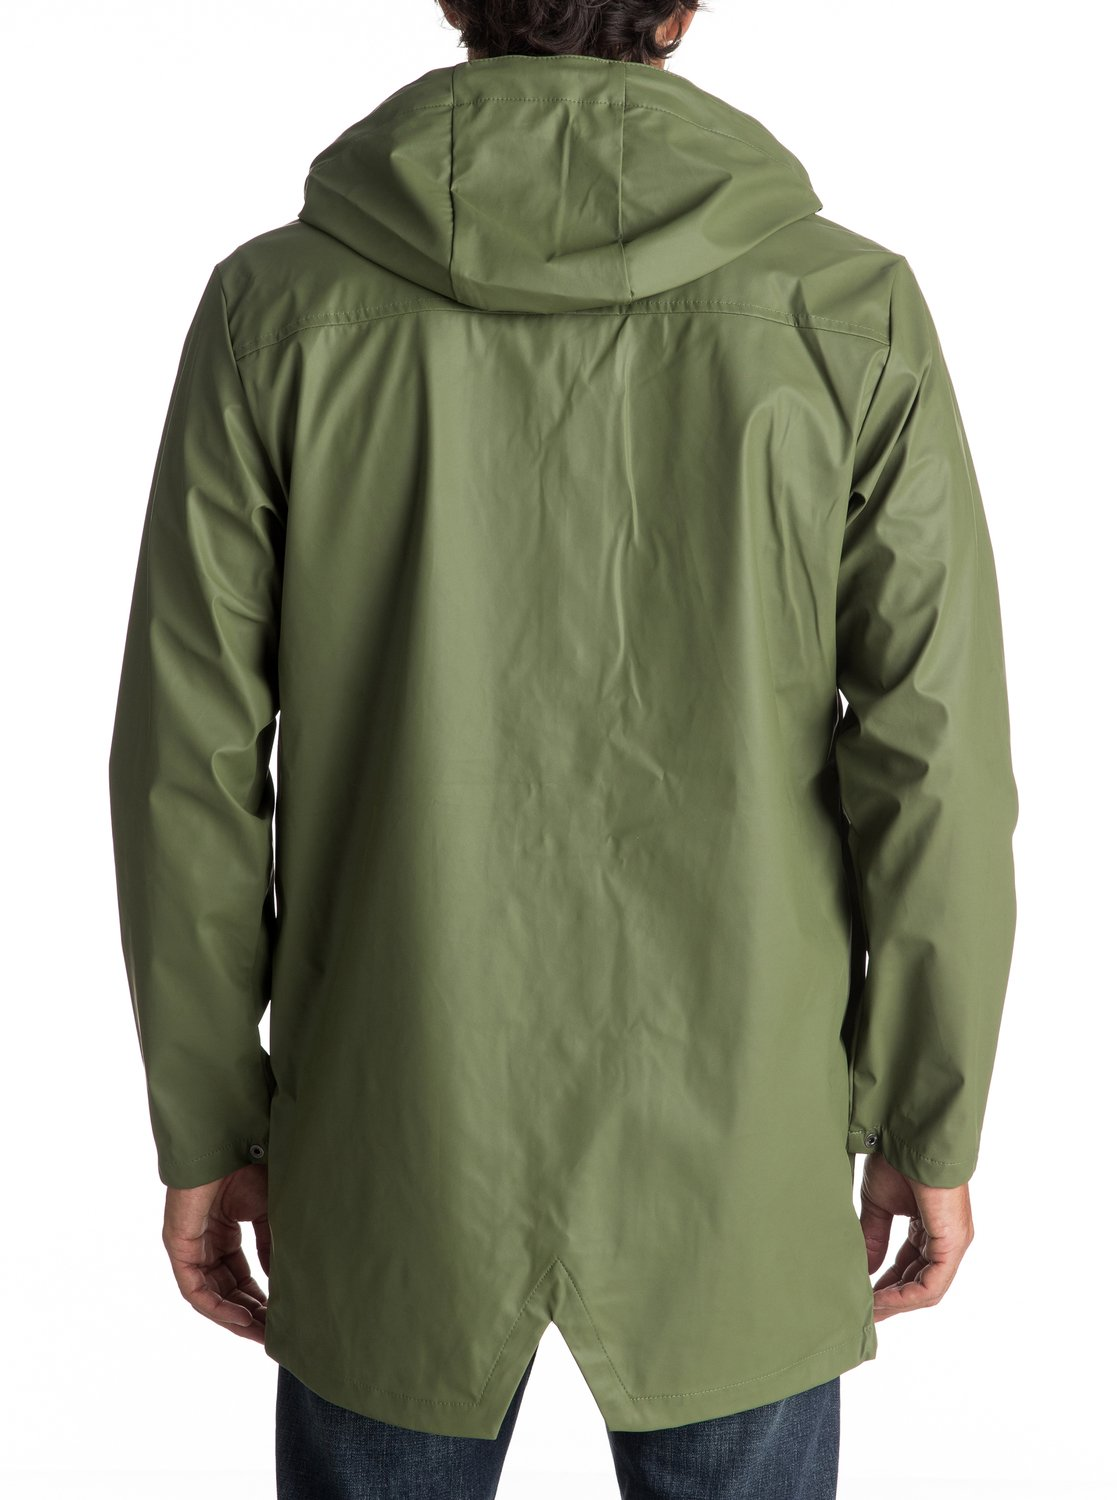 Travers Deep Long Rain Jacket EQYJK03309 | Quiksilver